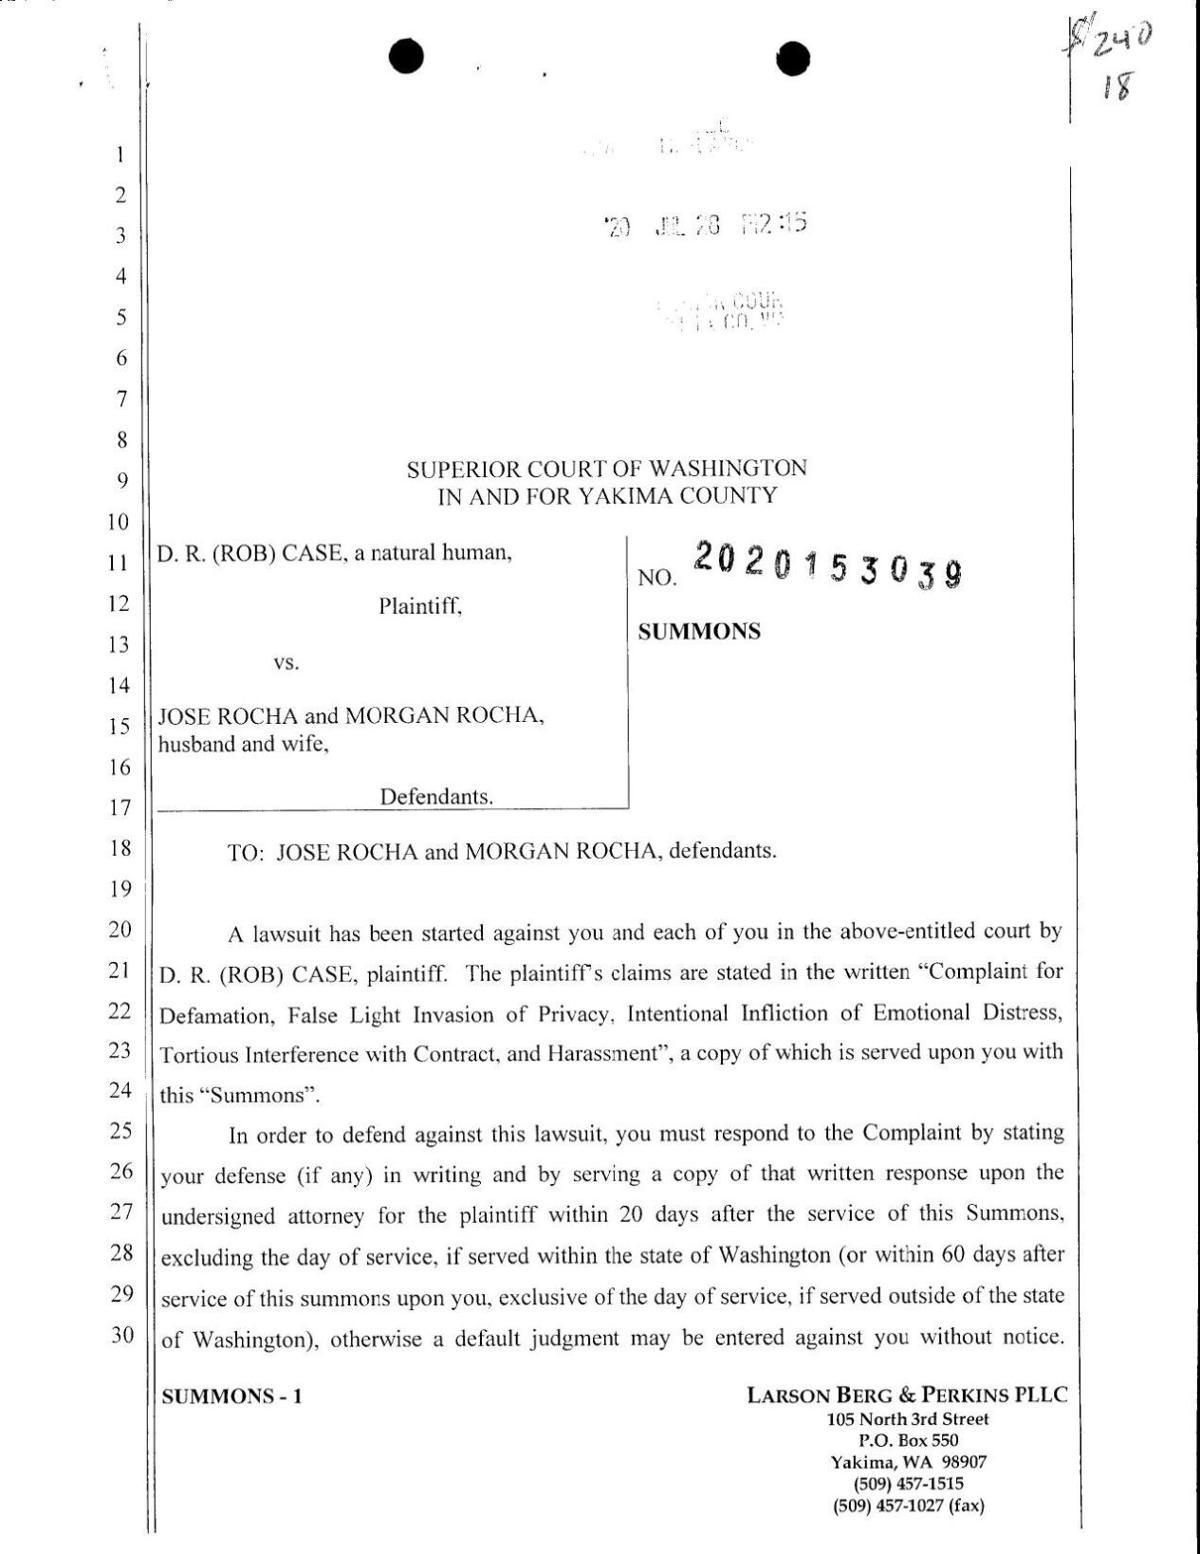 """Lawsuit filed by D.R. """"Rob"""" Case against Jose Rocha"""